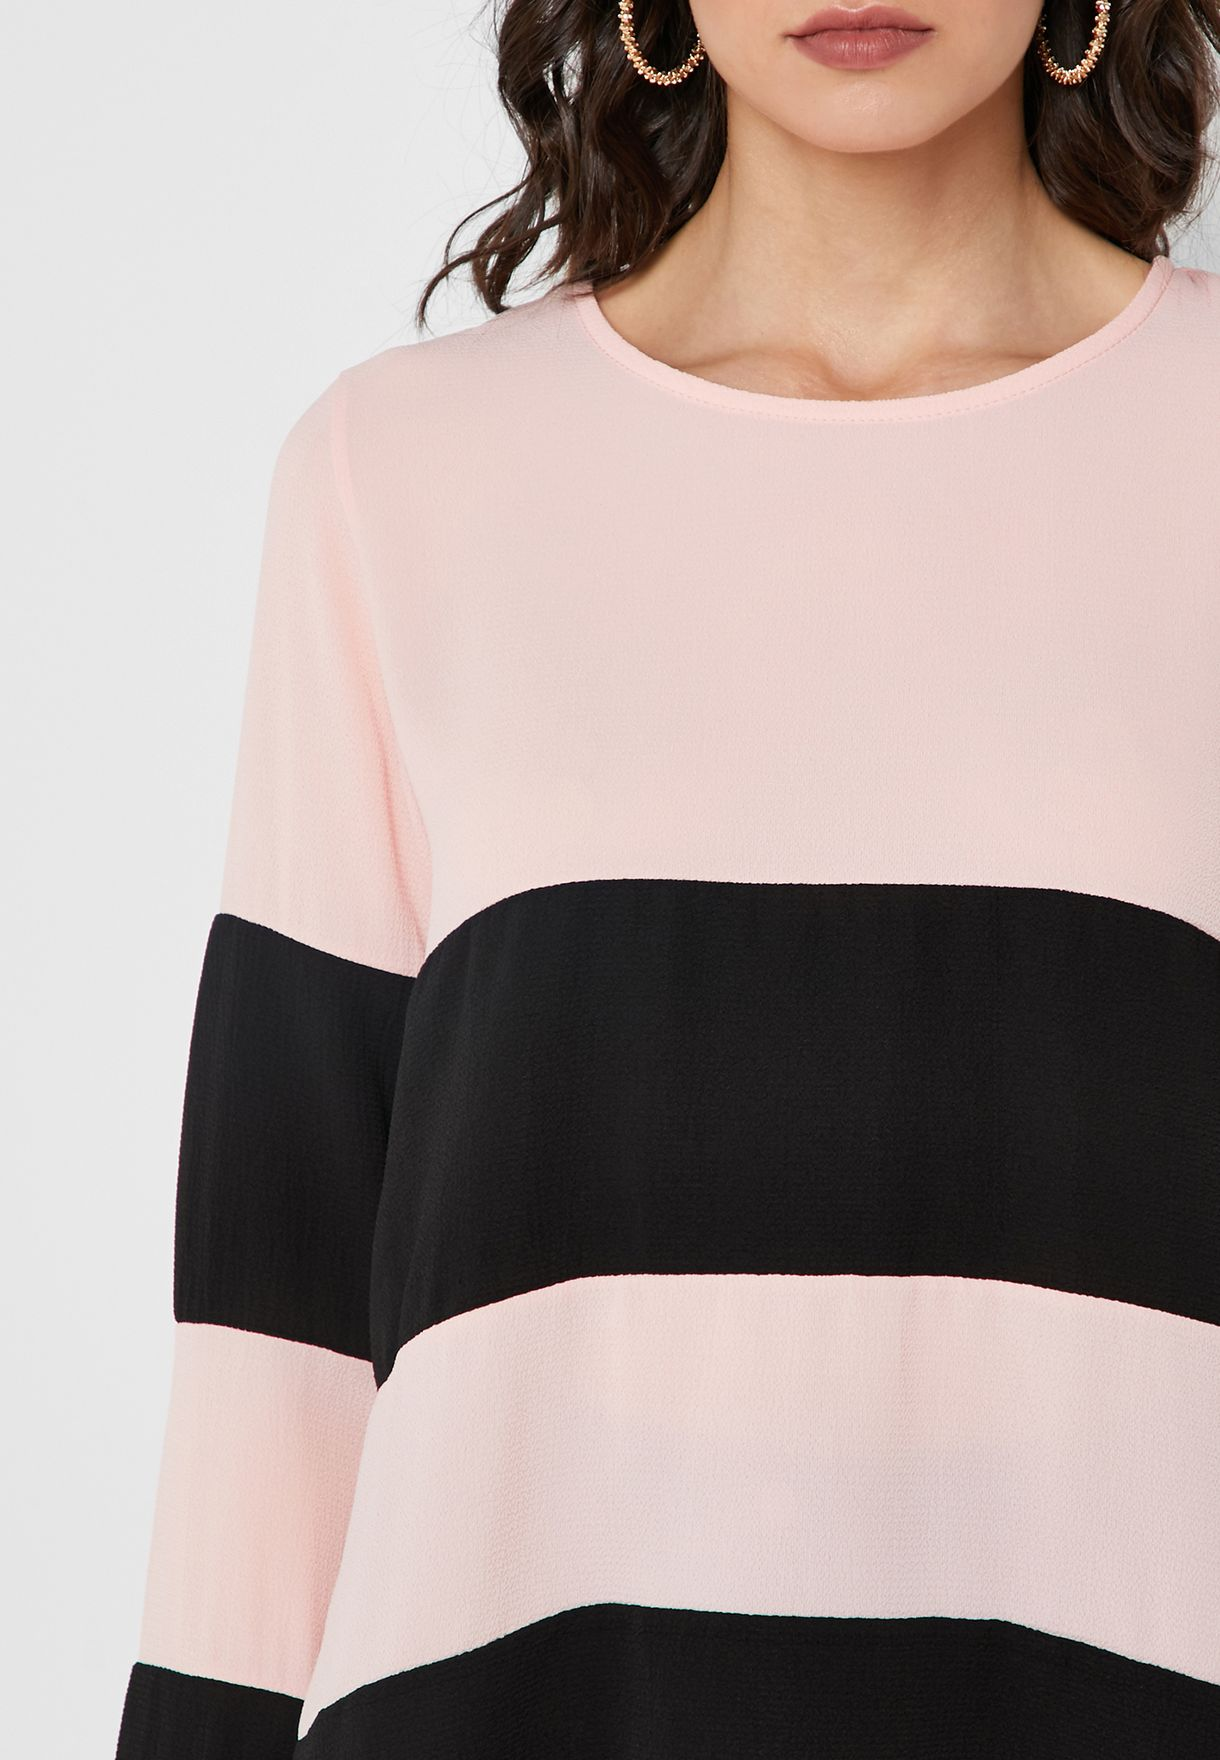 Colourblock Top